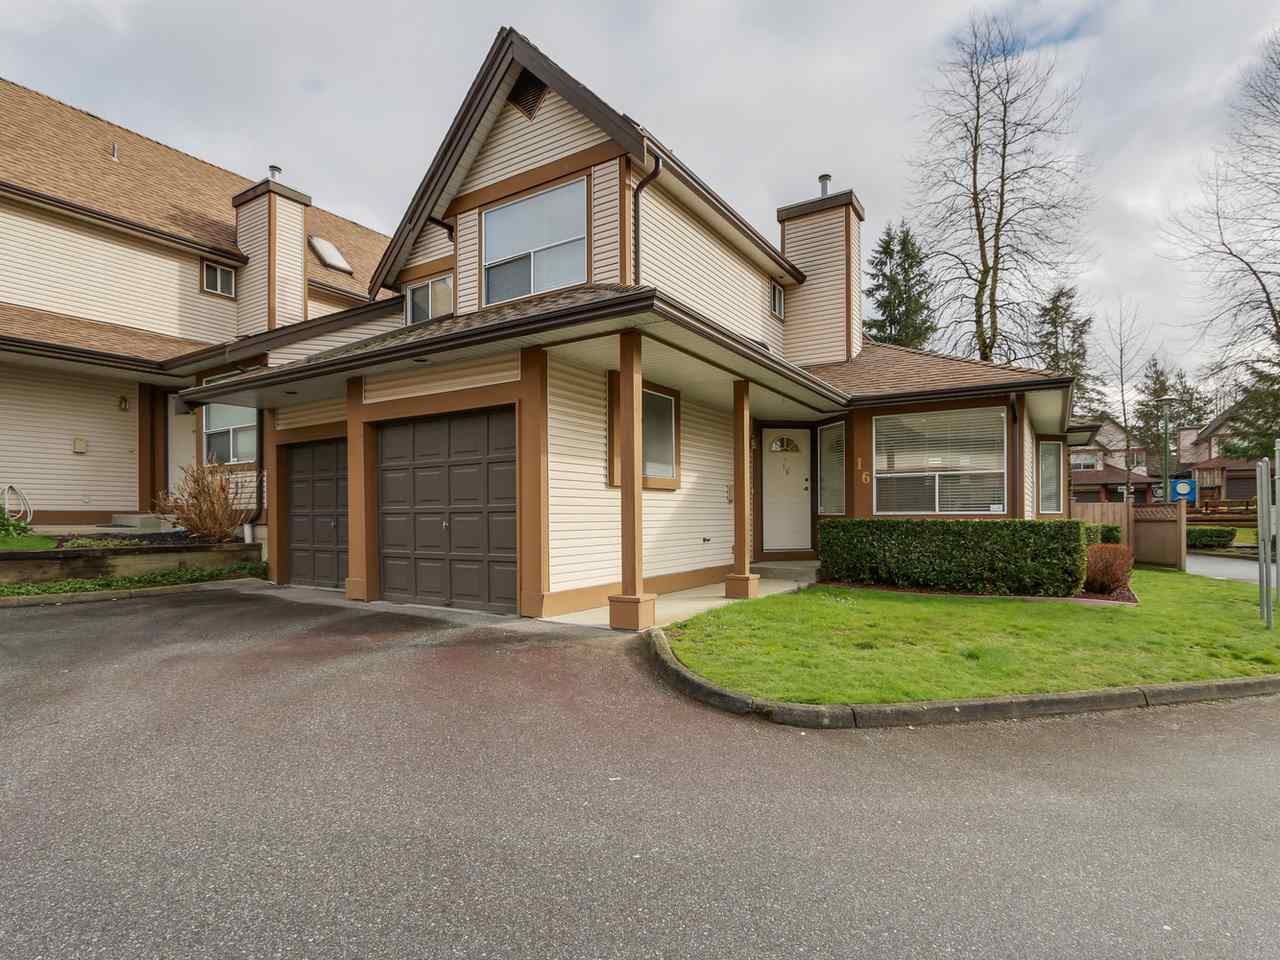 Main Photo: 16 23151 HANEY BYPASS in Maple Ridge: East Central Townhouse for sale : MLS(r) # R2040781